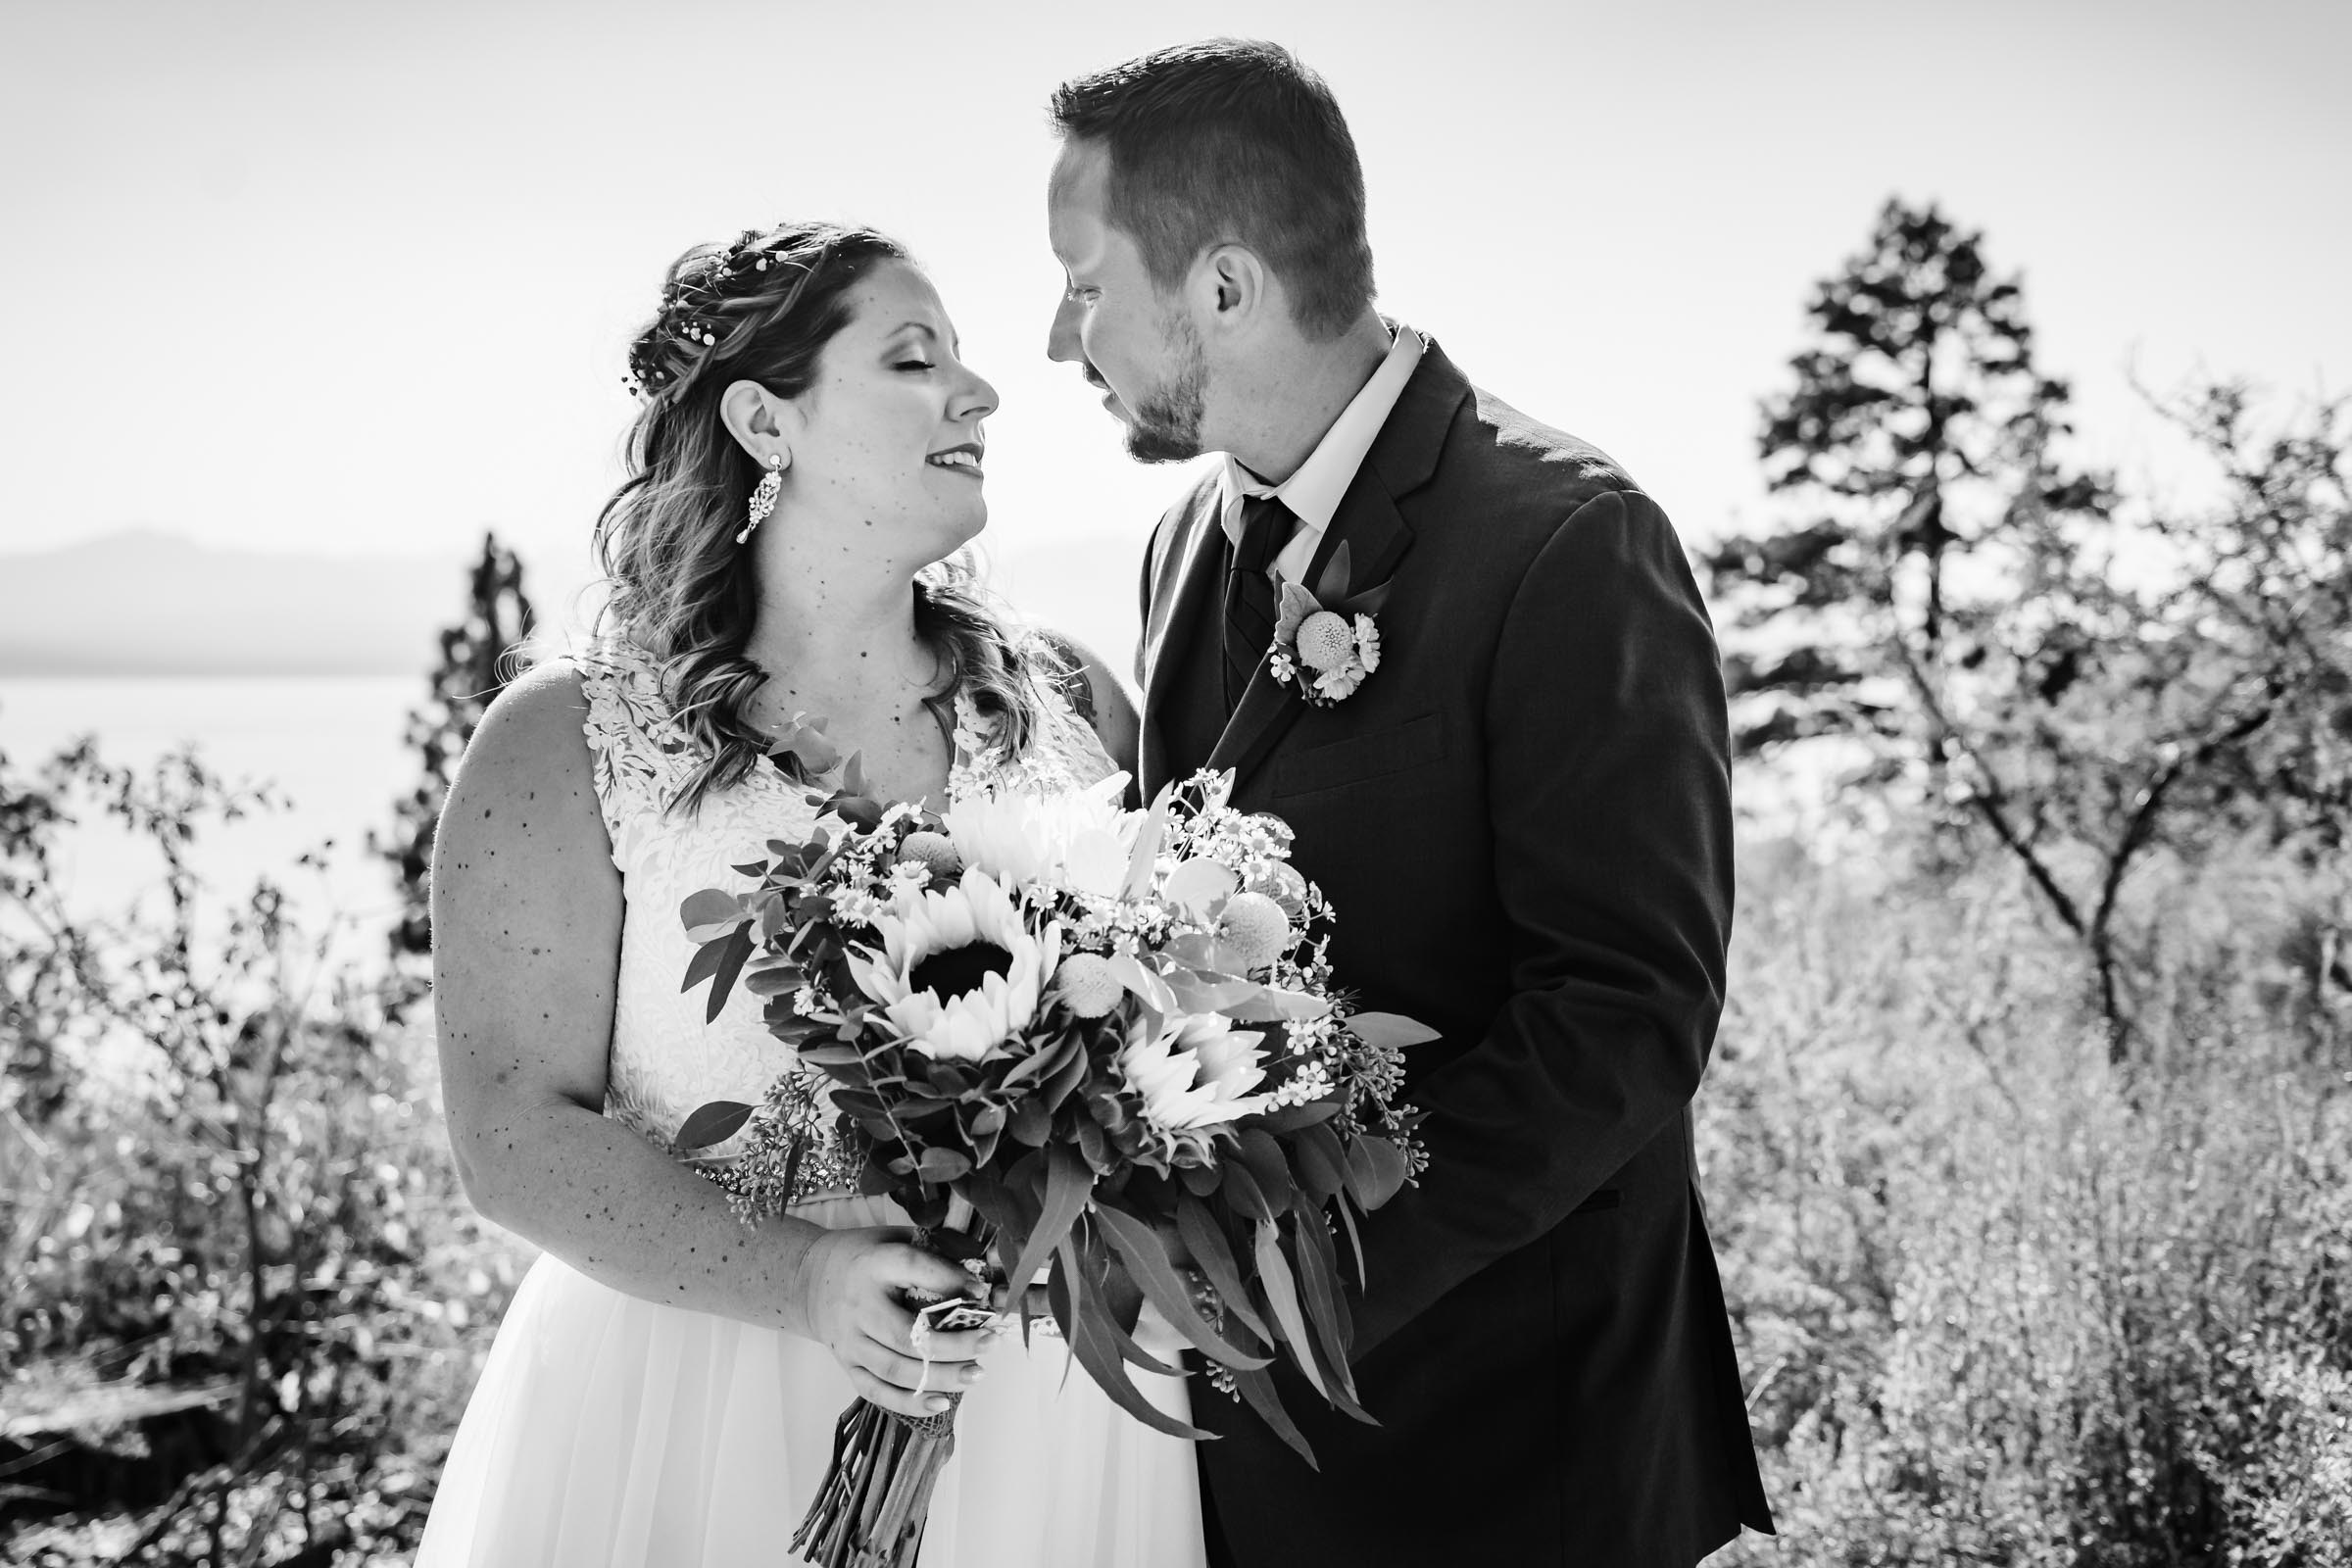 First Look for wedding at Harrahs Harveys South Lake Tahoe